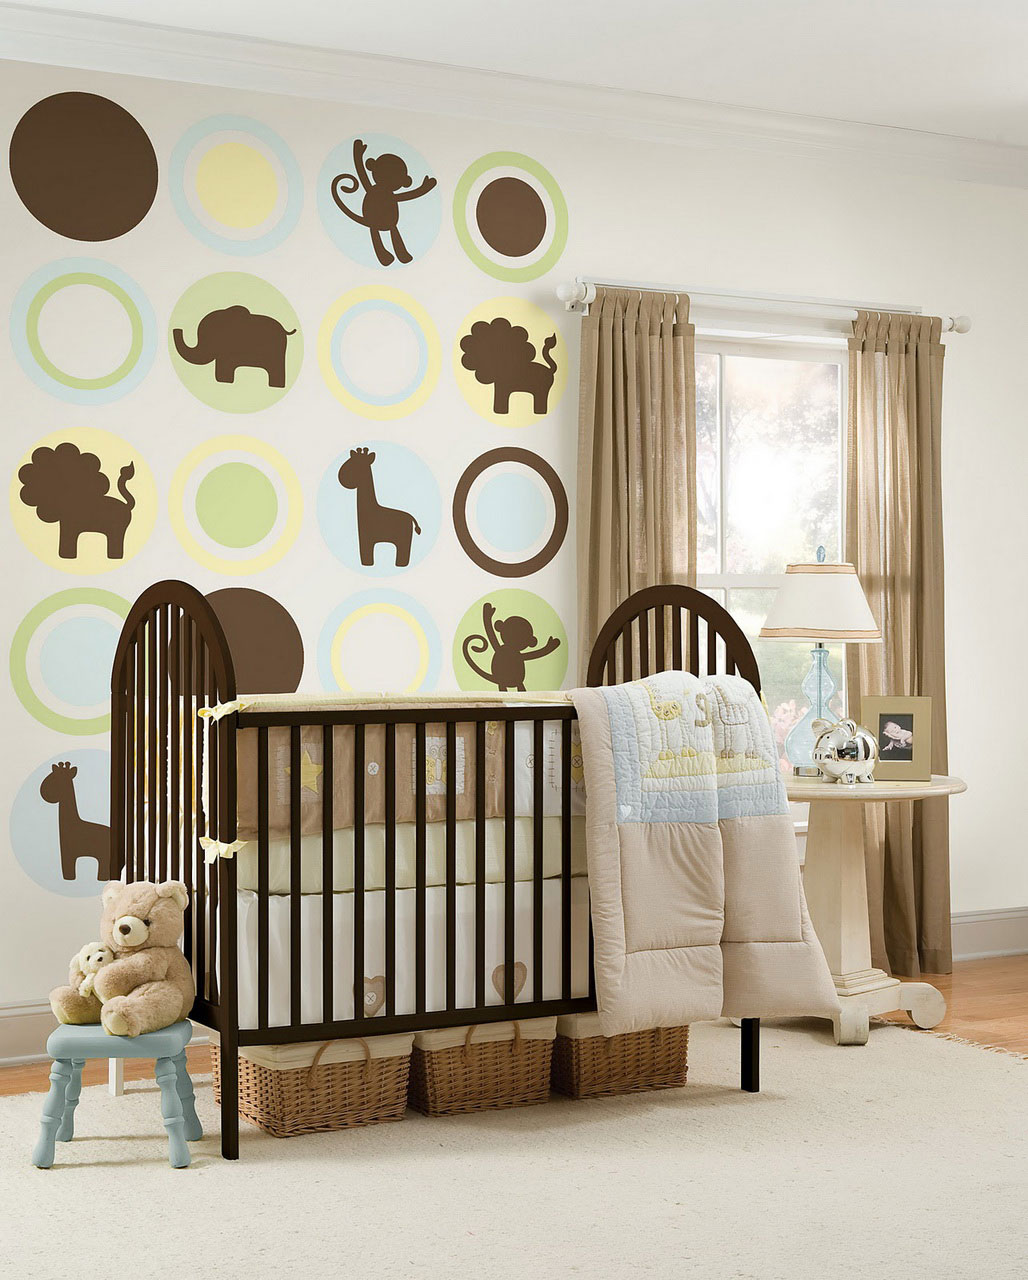 Trendy Baby Nursery Room Ideas 1028 x 1280 · 224 kB · jpeg